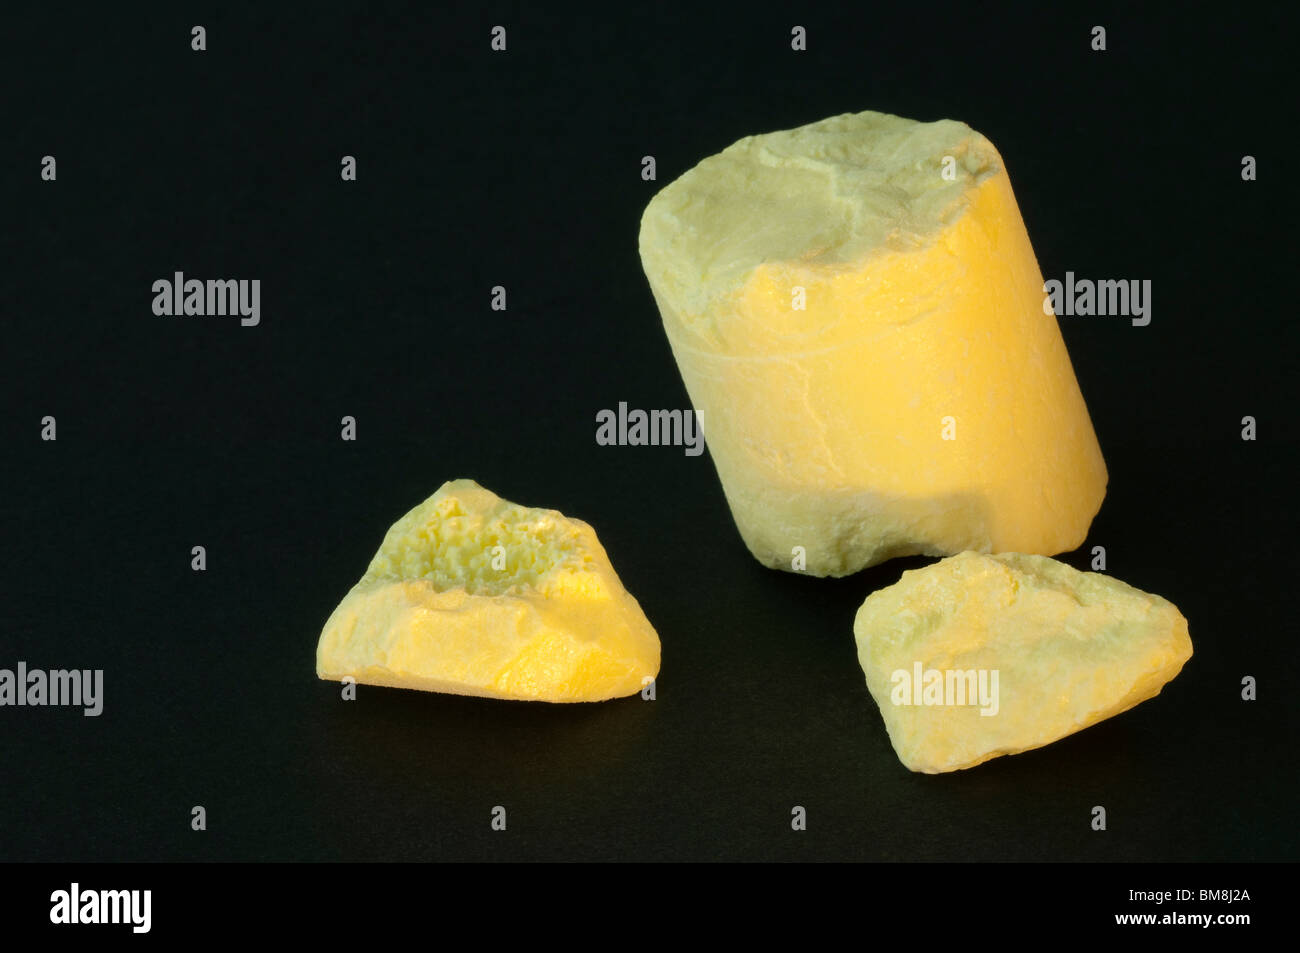 Sulfur, sulphur. Cast rods for industrial use. Studio picture. - Stock Image